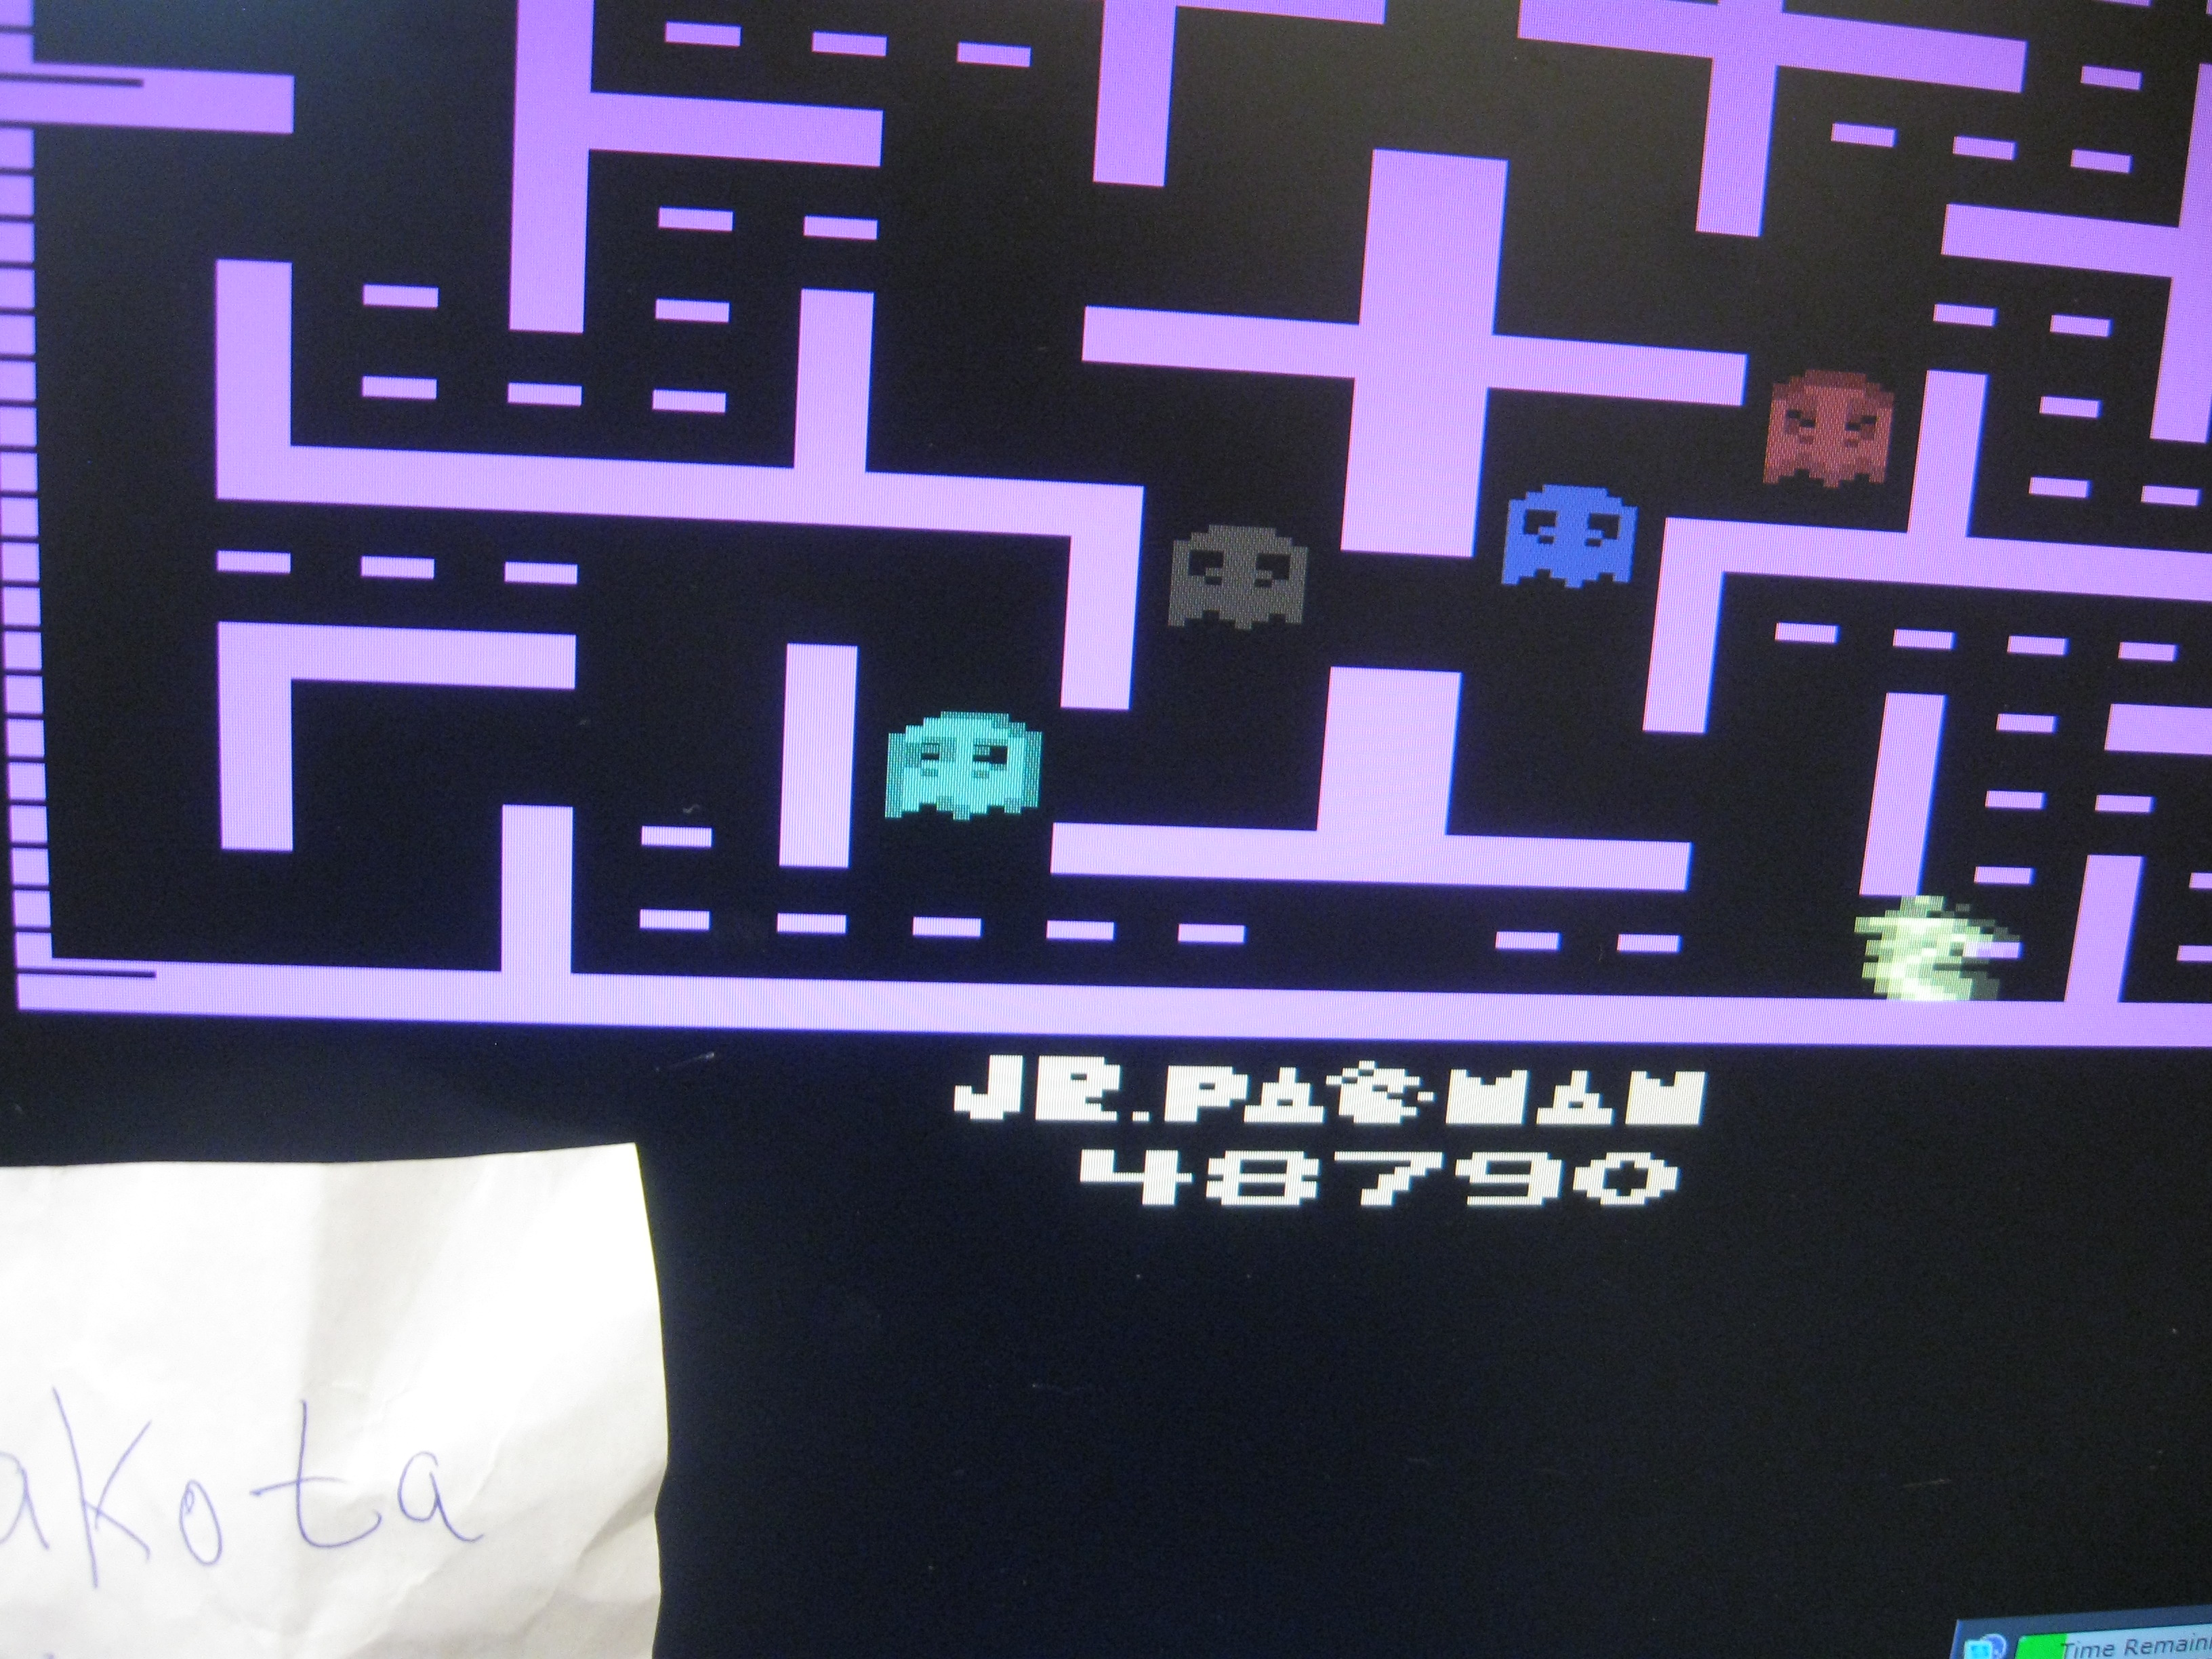 Jr. Pac-Man 48,790 points